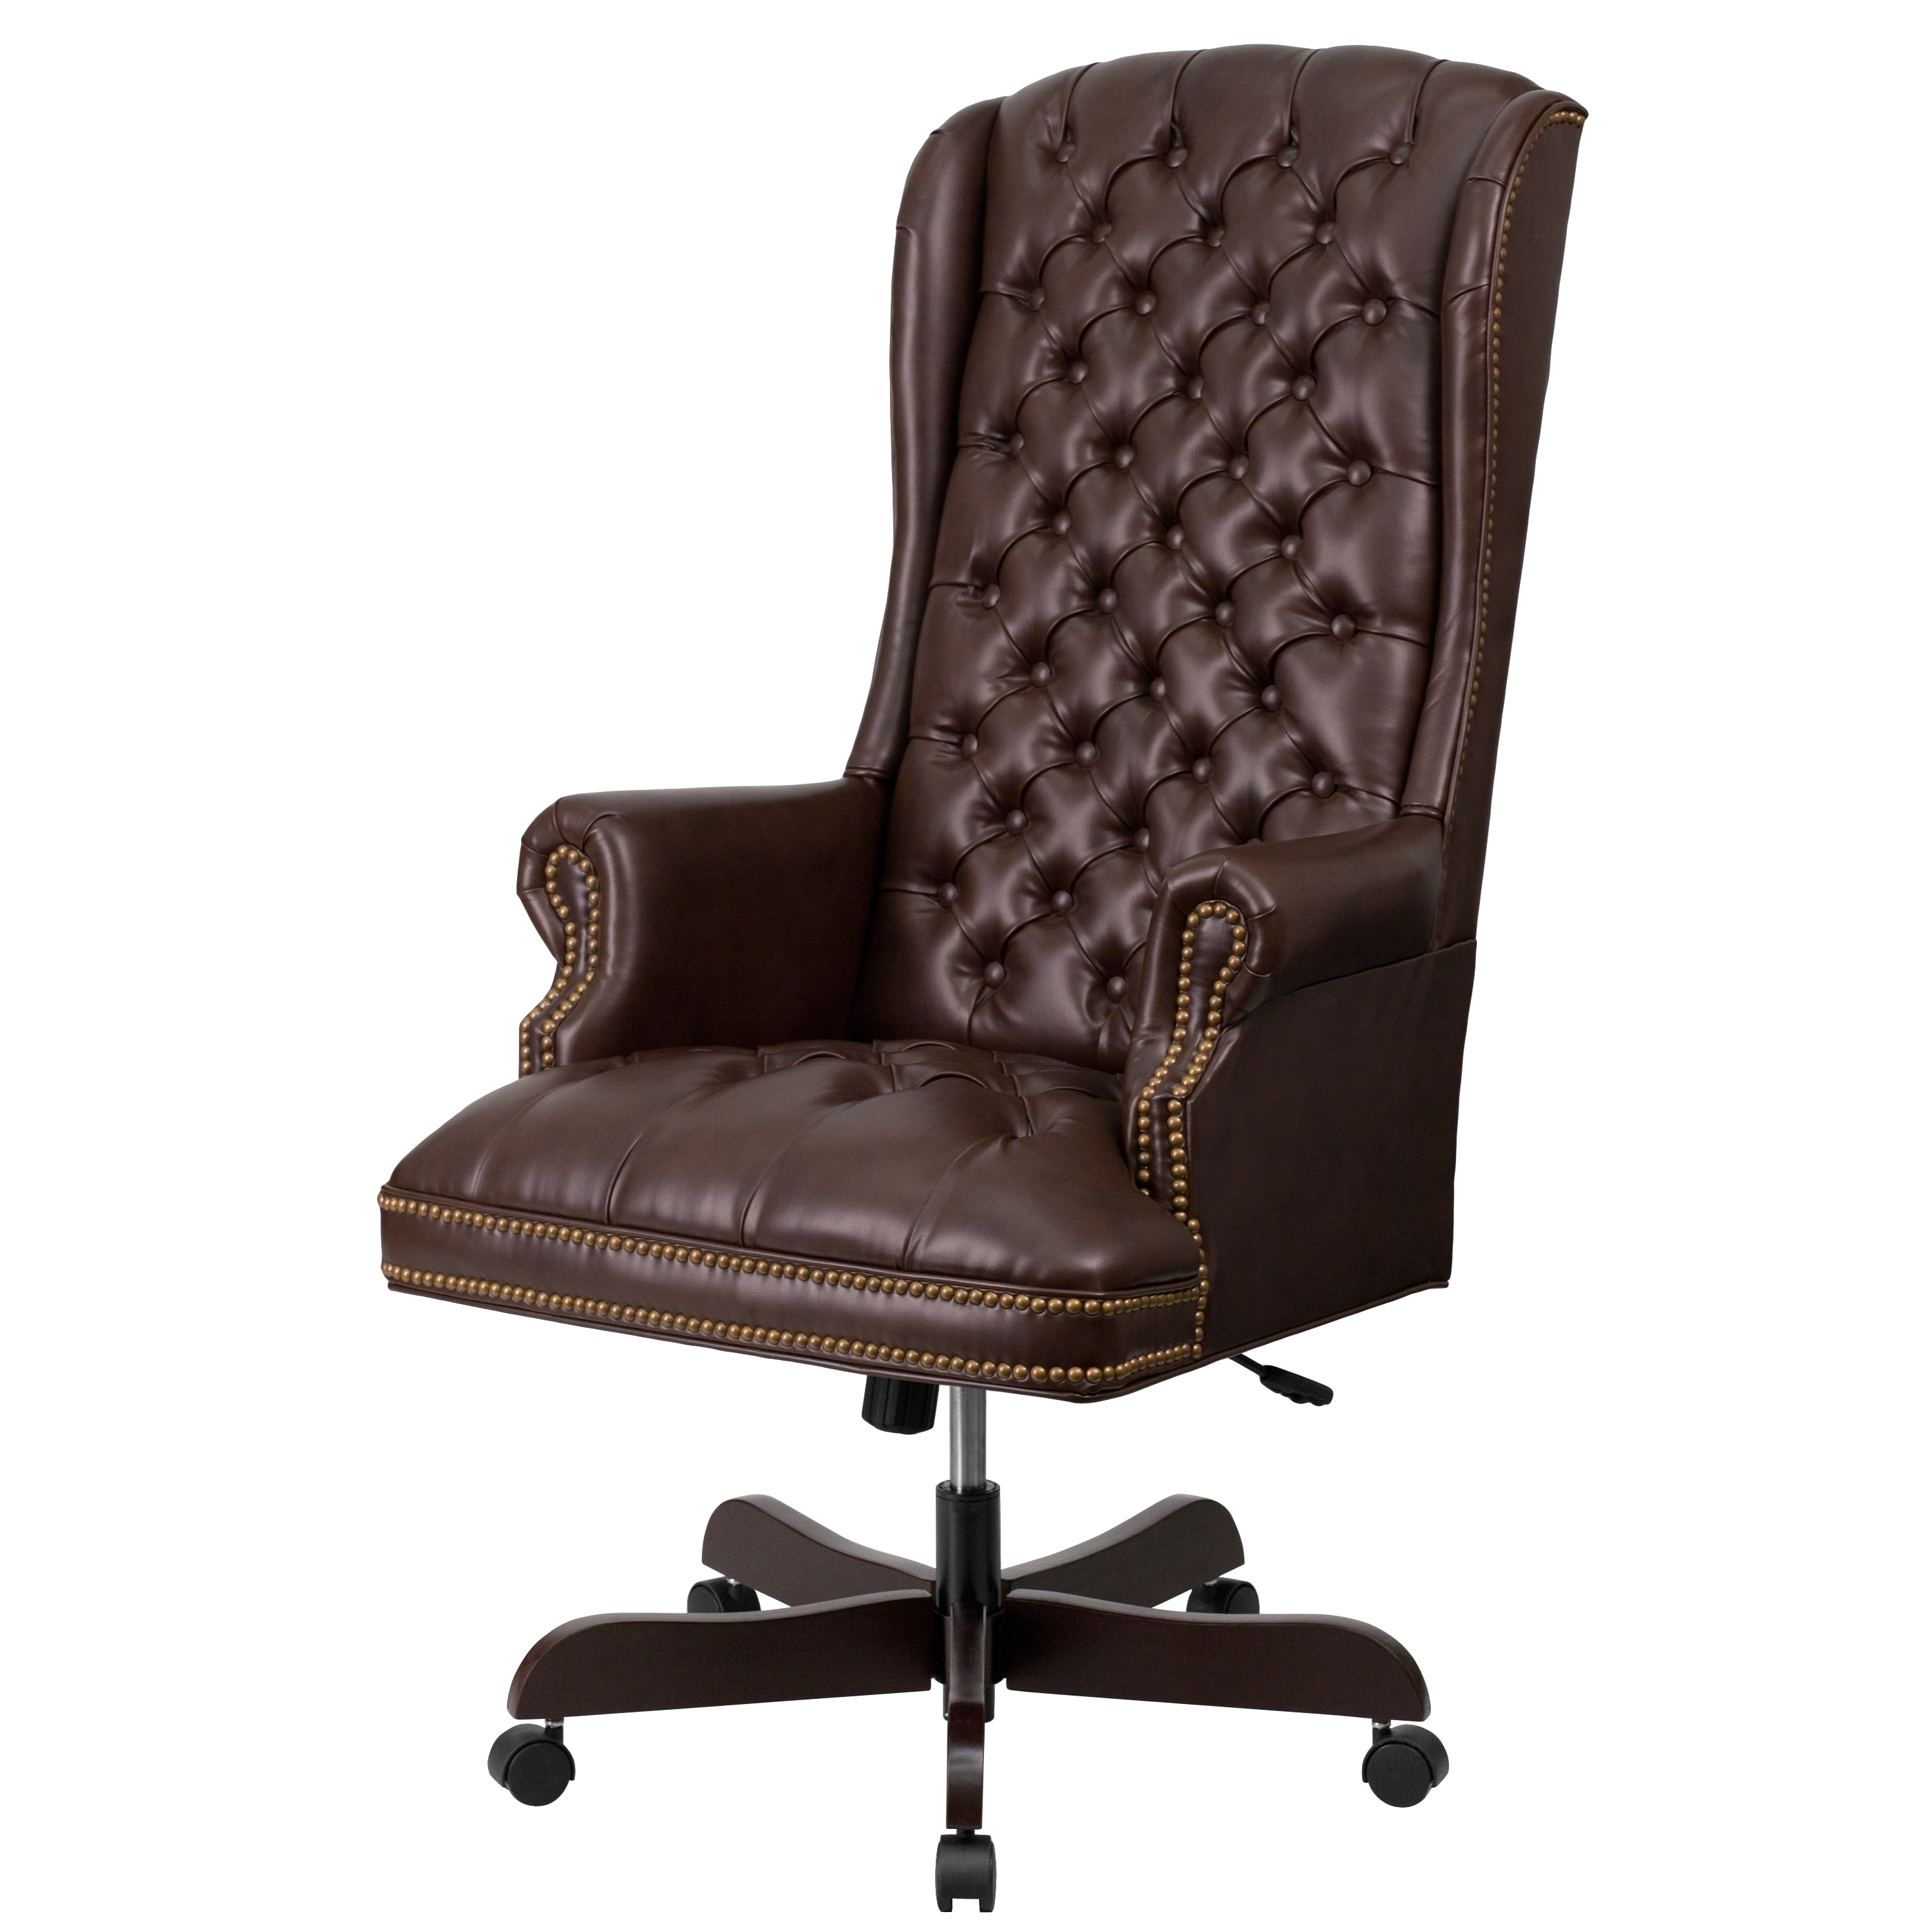 High Back Traditional Tufted Leather Executive Office Chair – Free In Best And Newest Expensive Executive Office Chairs (View 10 of 20)